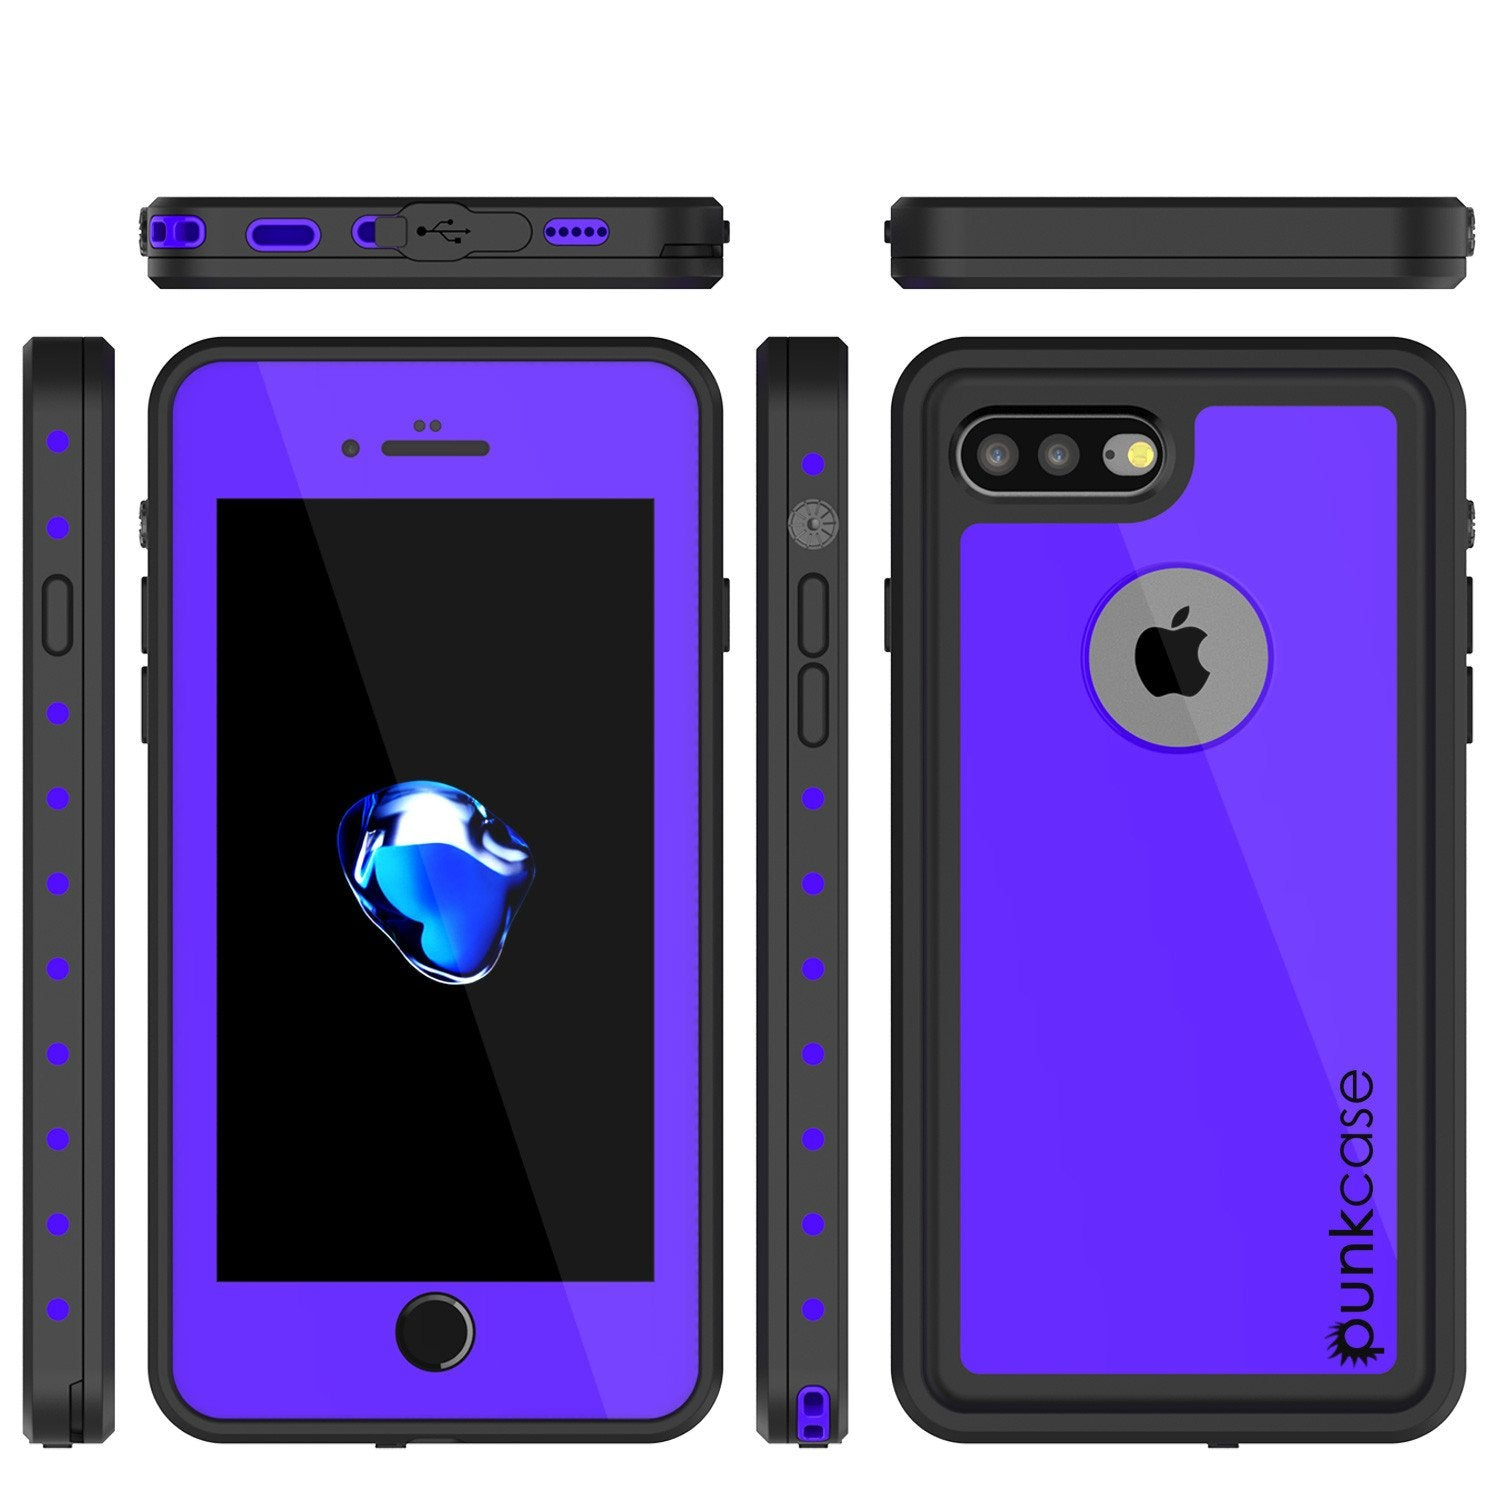 iPhone 8+ Plus Waterproof IP68 Case, Punkcase [Purple] [StudStar Series] [Slim Fit] [Dirtproof]